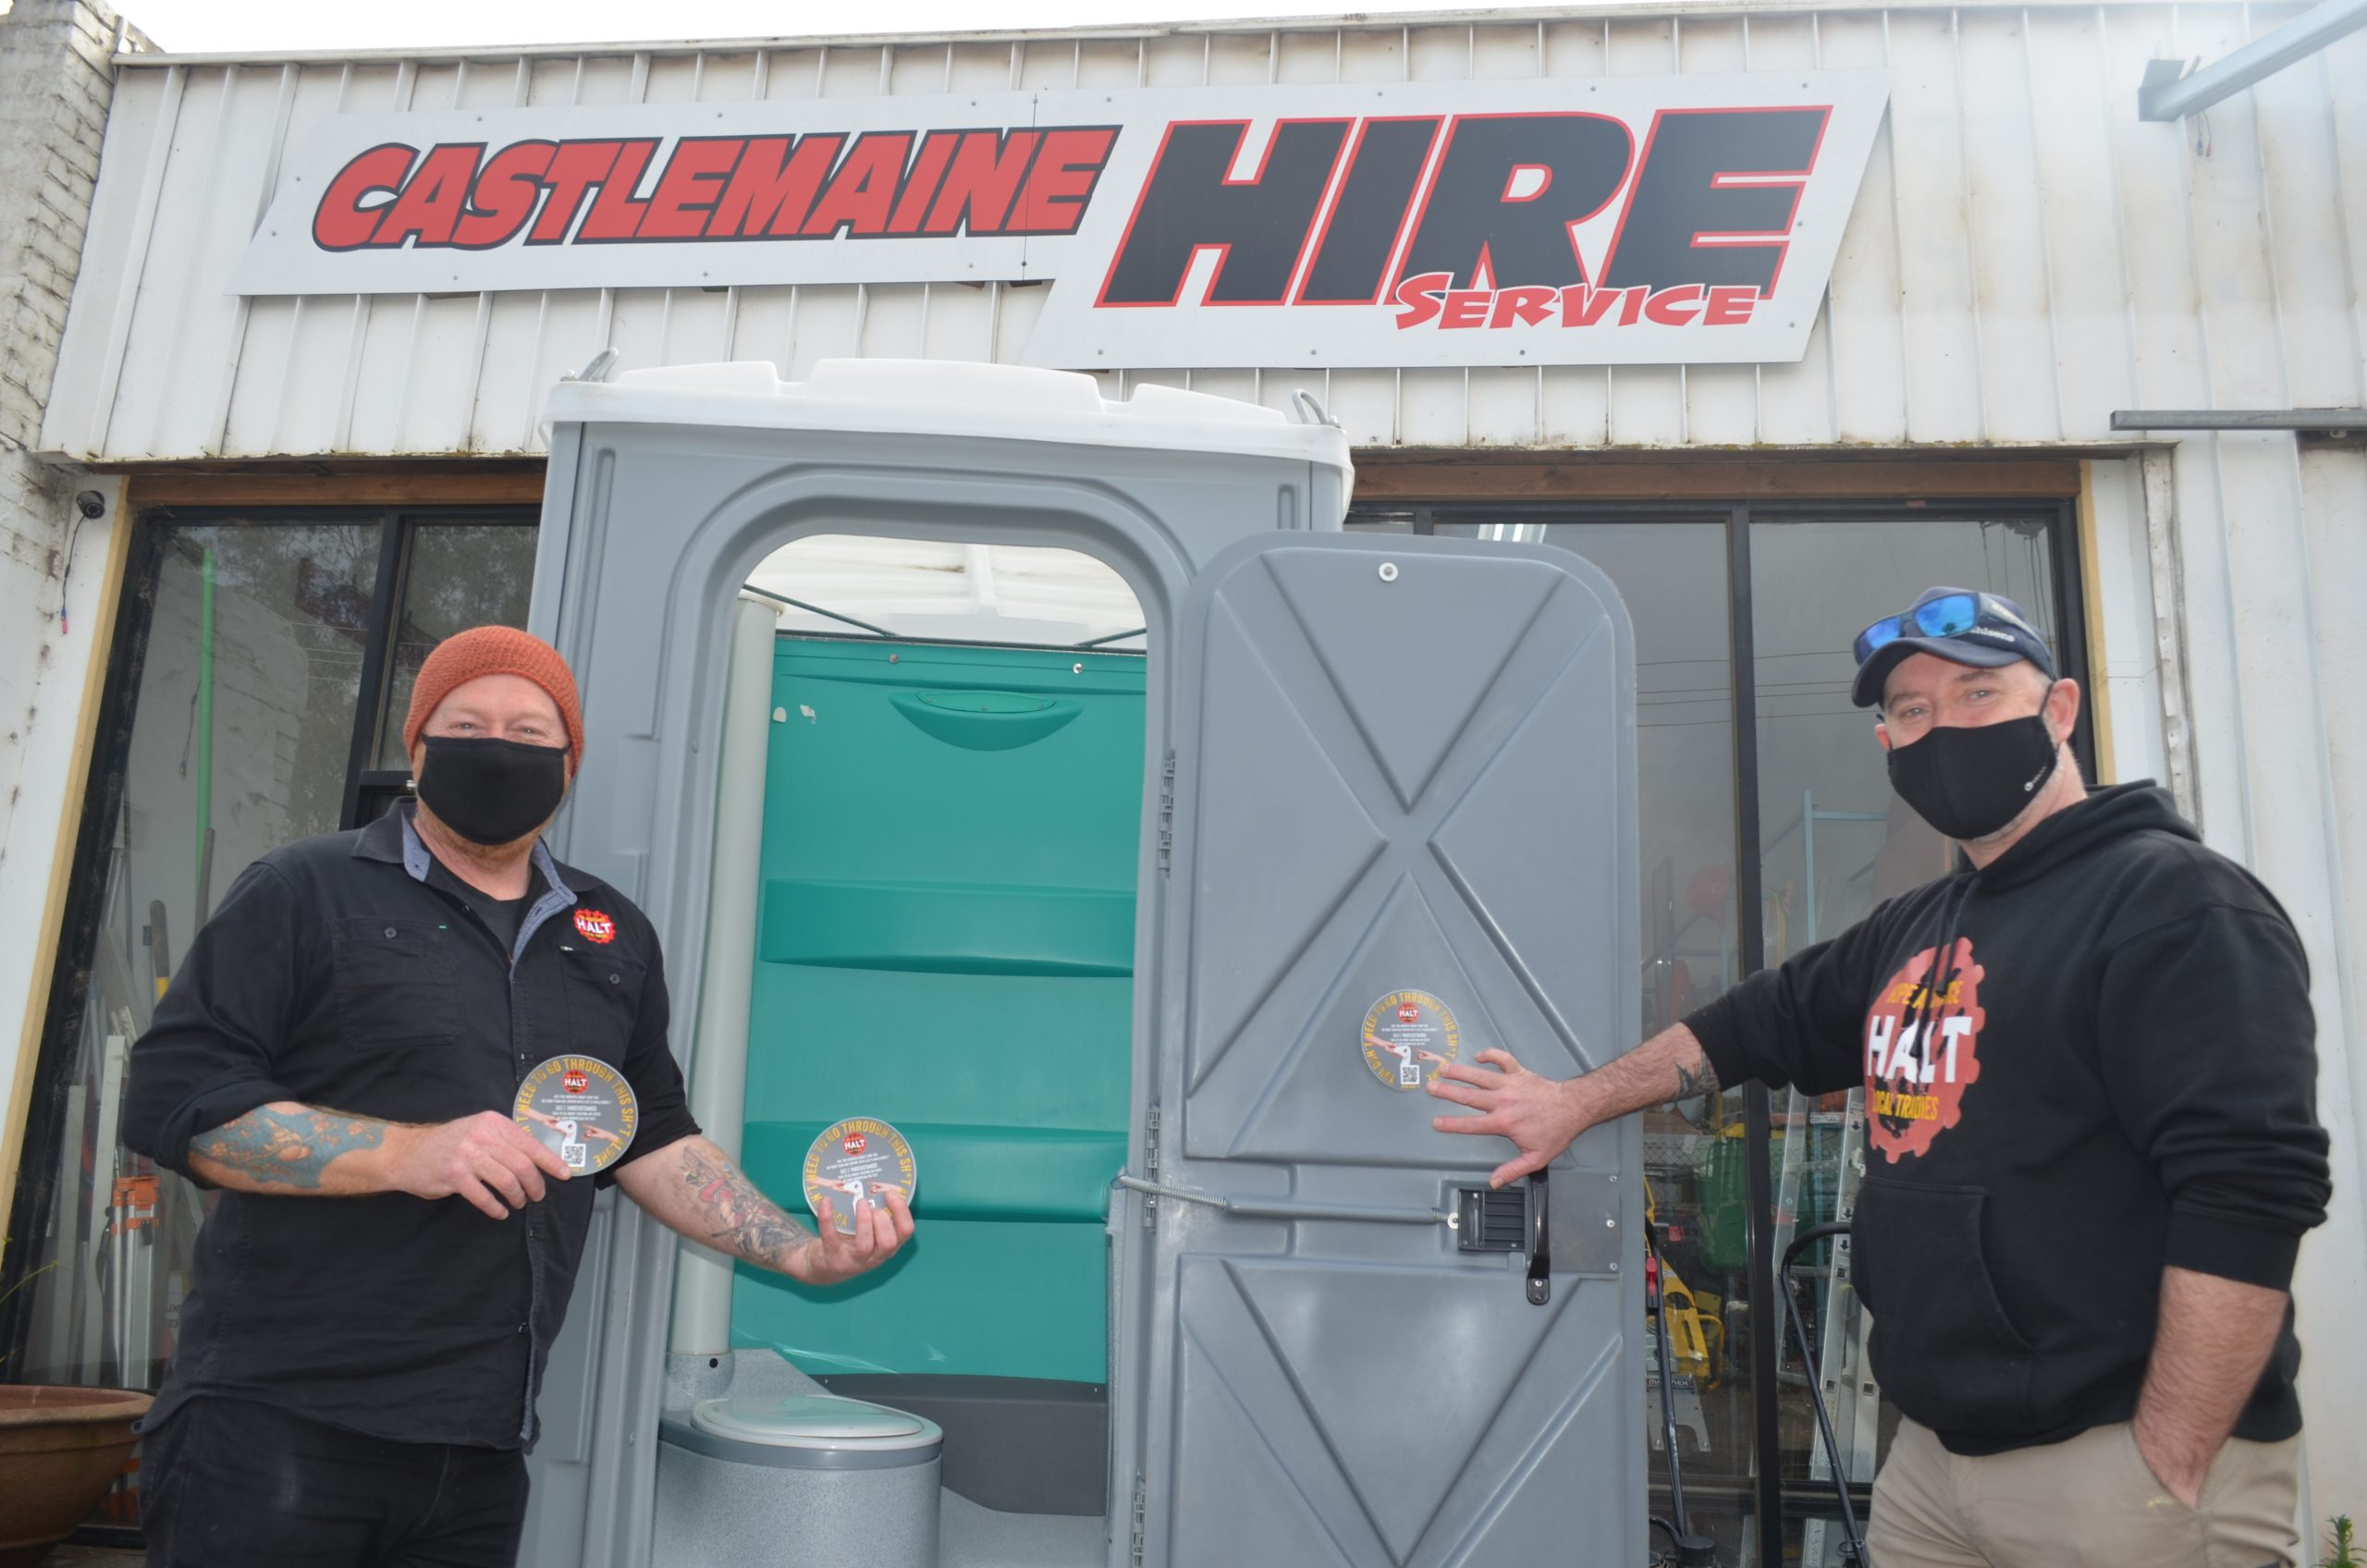 R U Okay? Feeling Sh*t? This new HALT initiative aims to help tradies across the country. HALT founder Jeremy Forbes and HALT North West region project worker Tom Kenneally are pictured with the new stickers at Castlemaine Hire Service earlier this week.